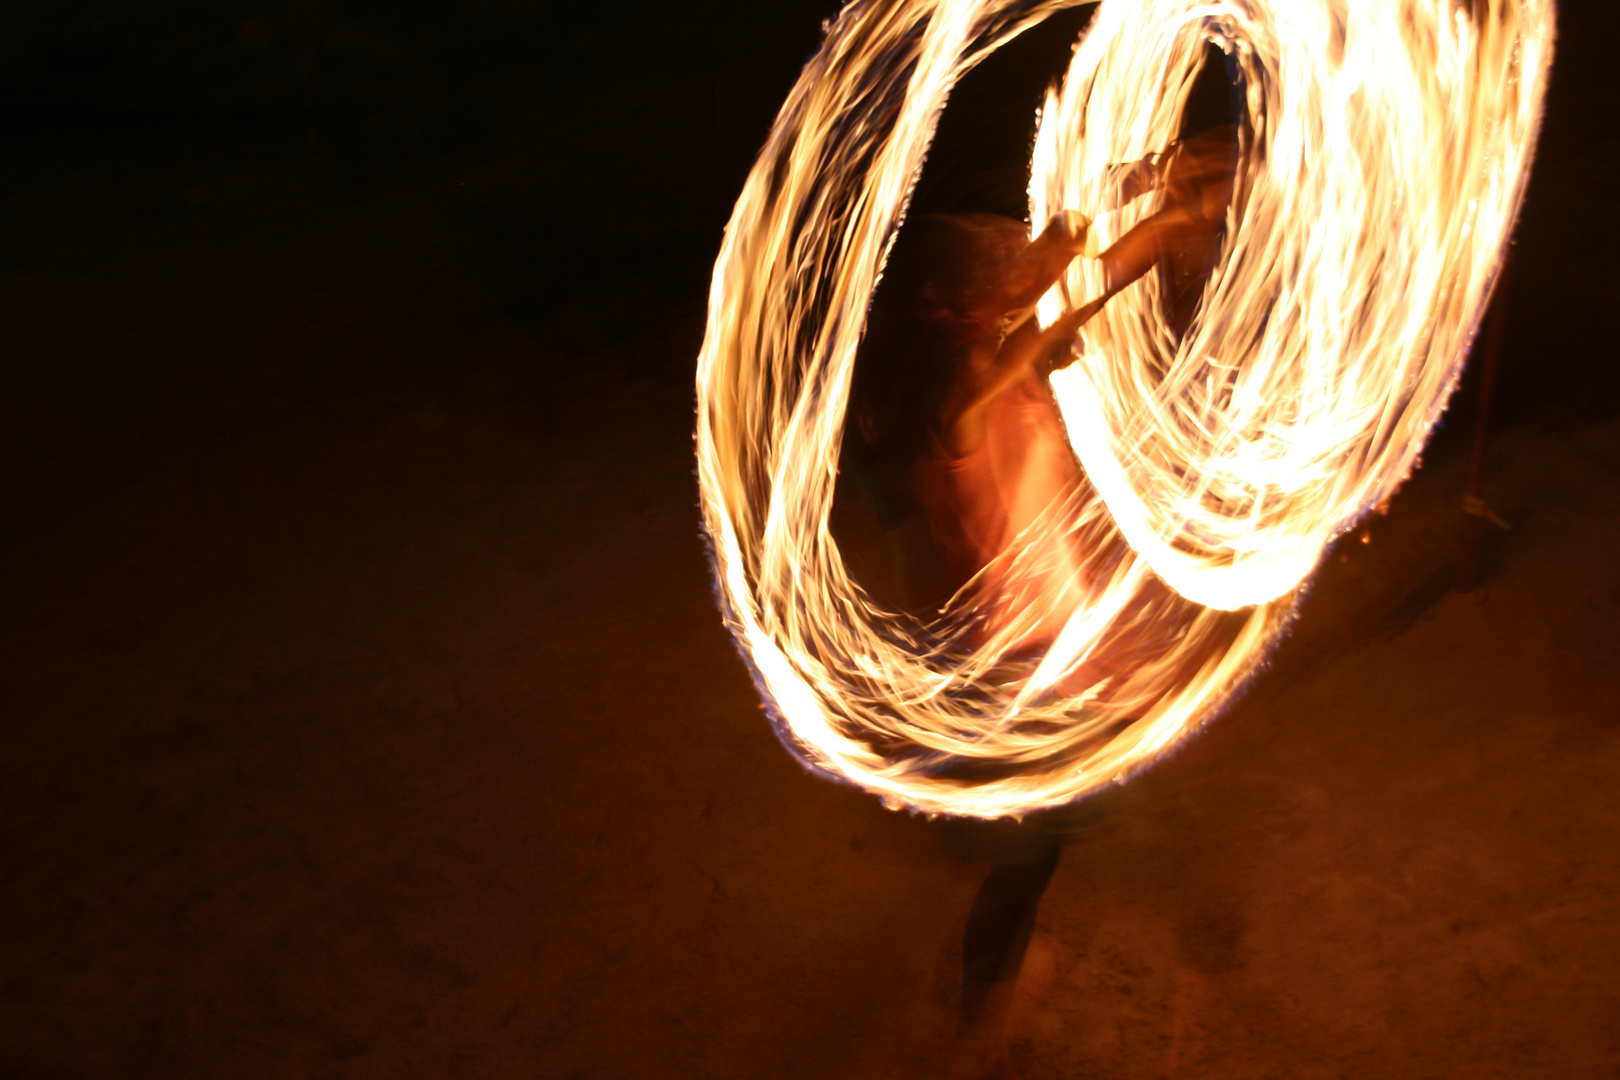 Dancing with fire V